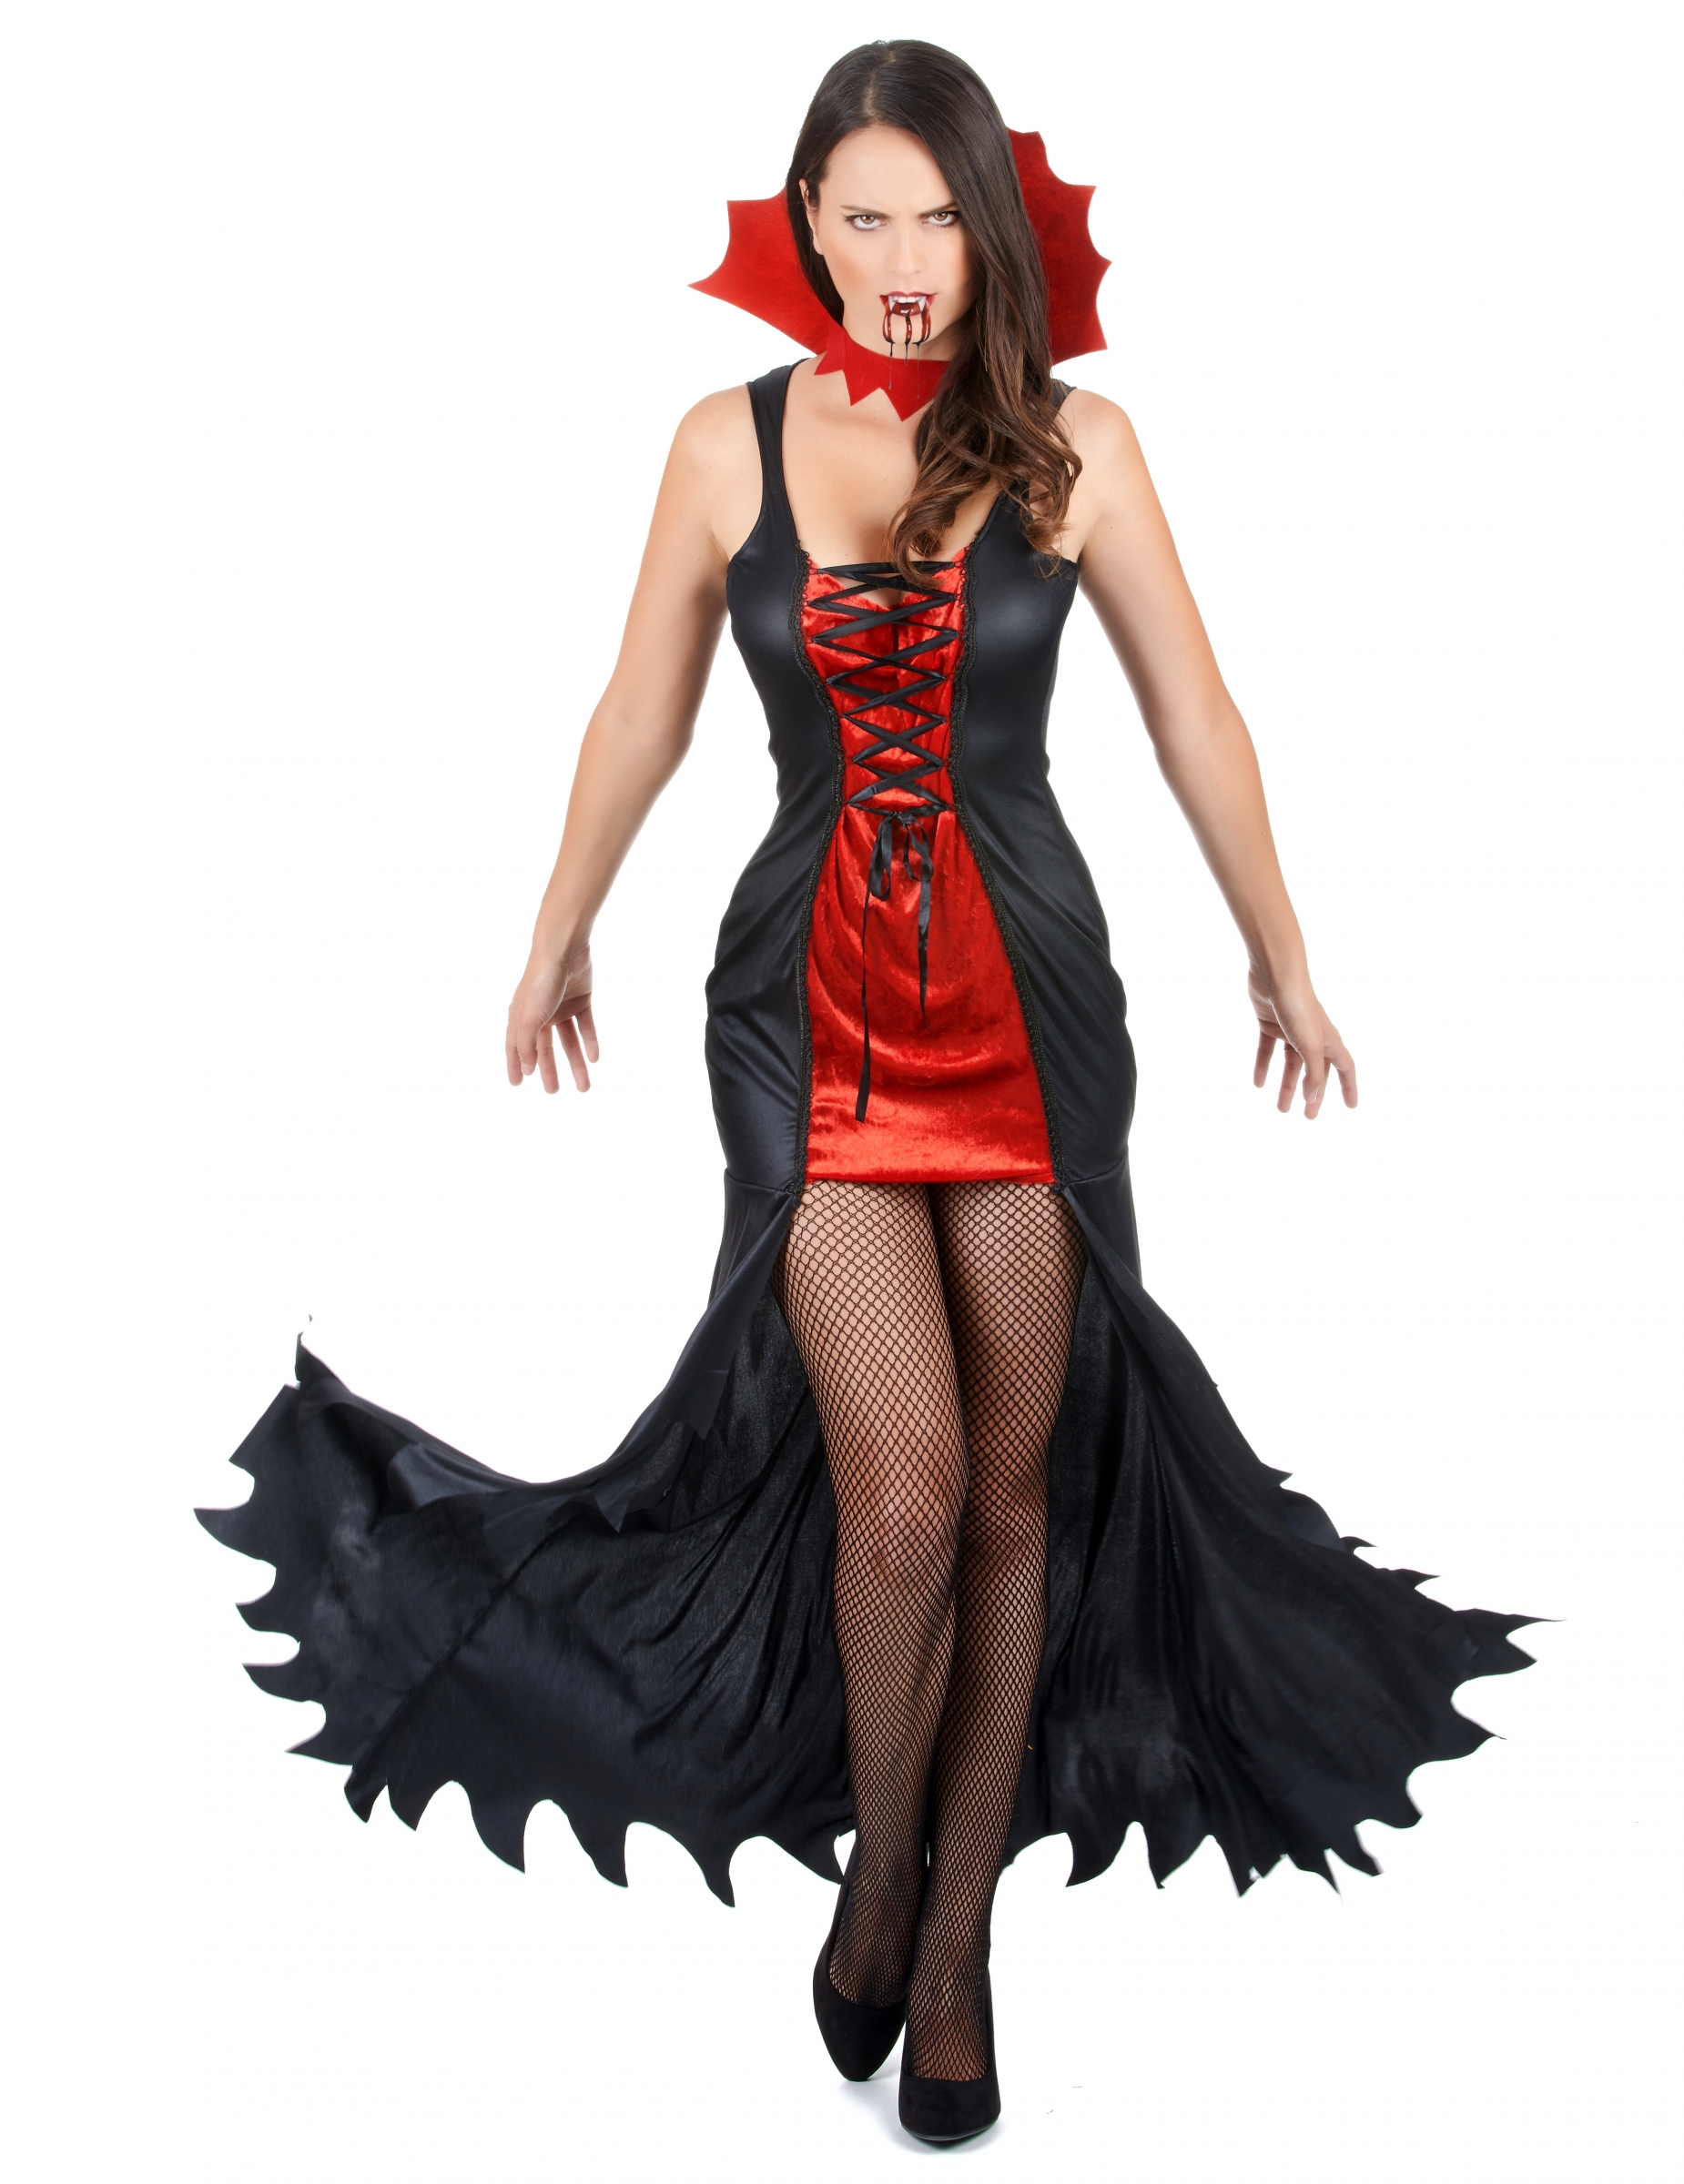 Set costume e accessori da vampiro per donna halloween  Costumi ... 36287e926ea5